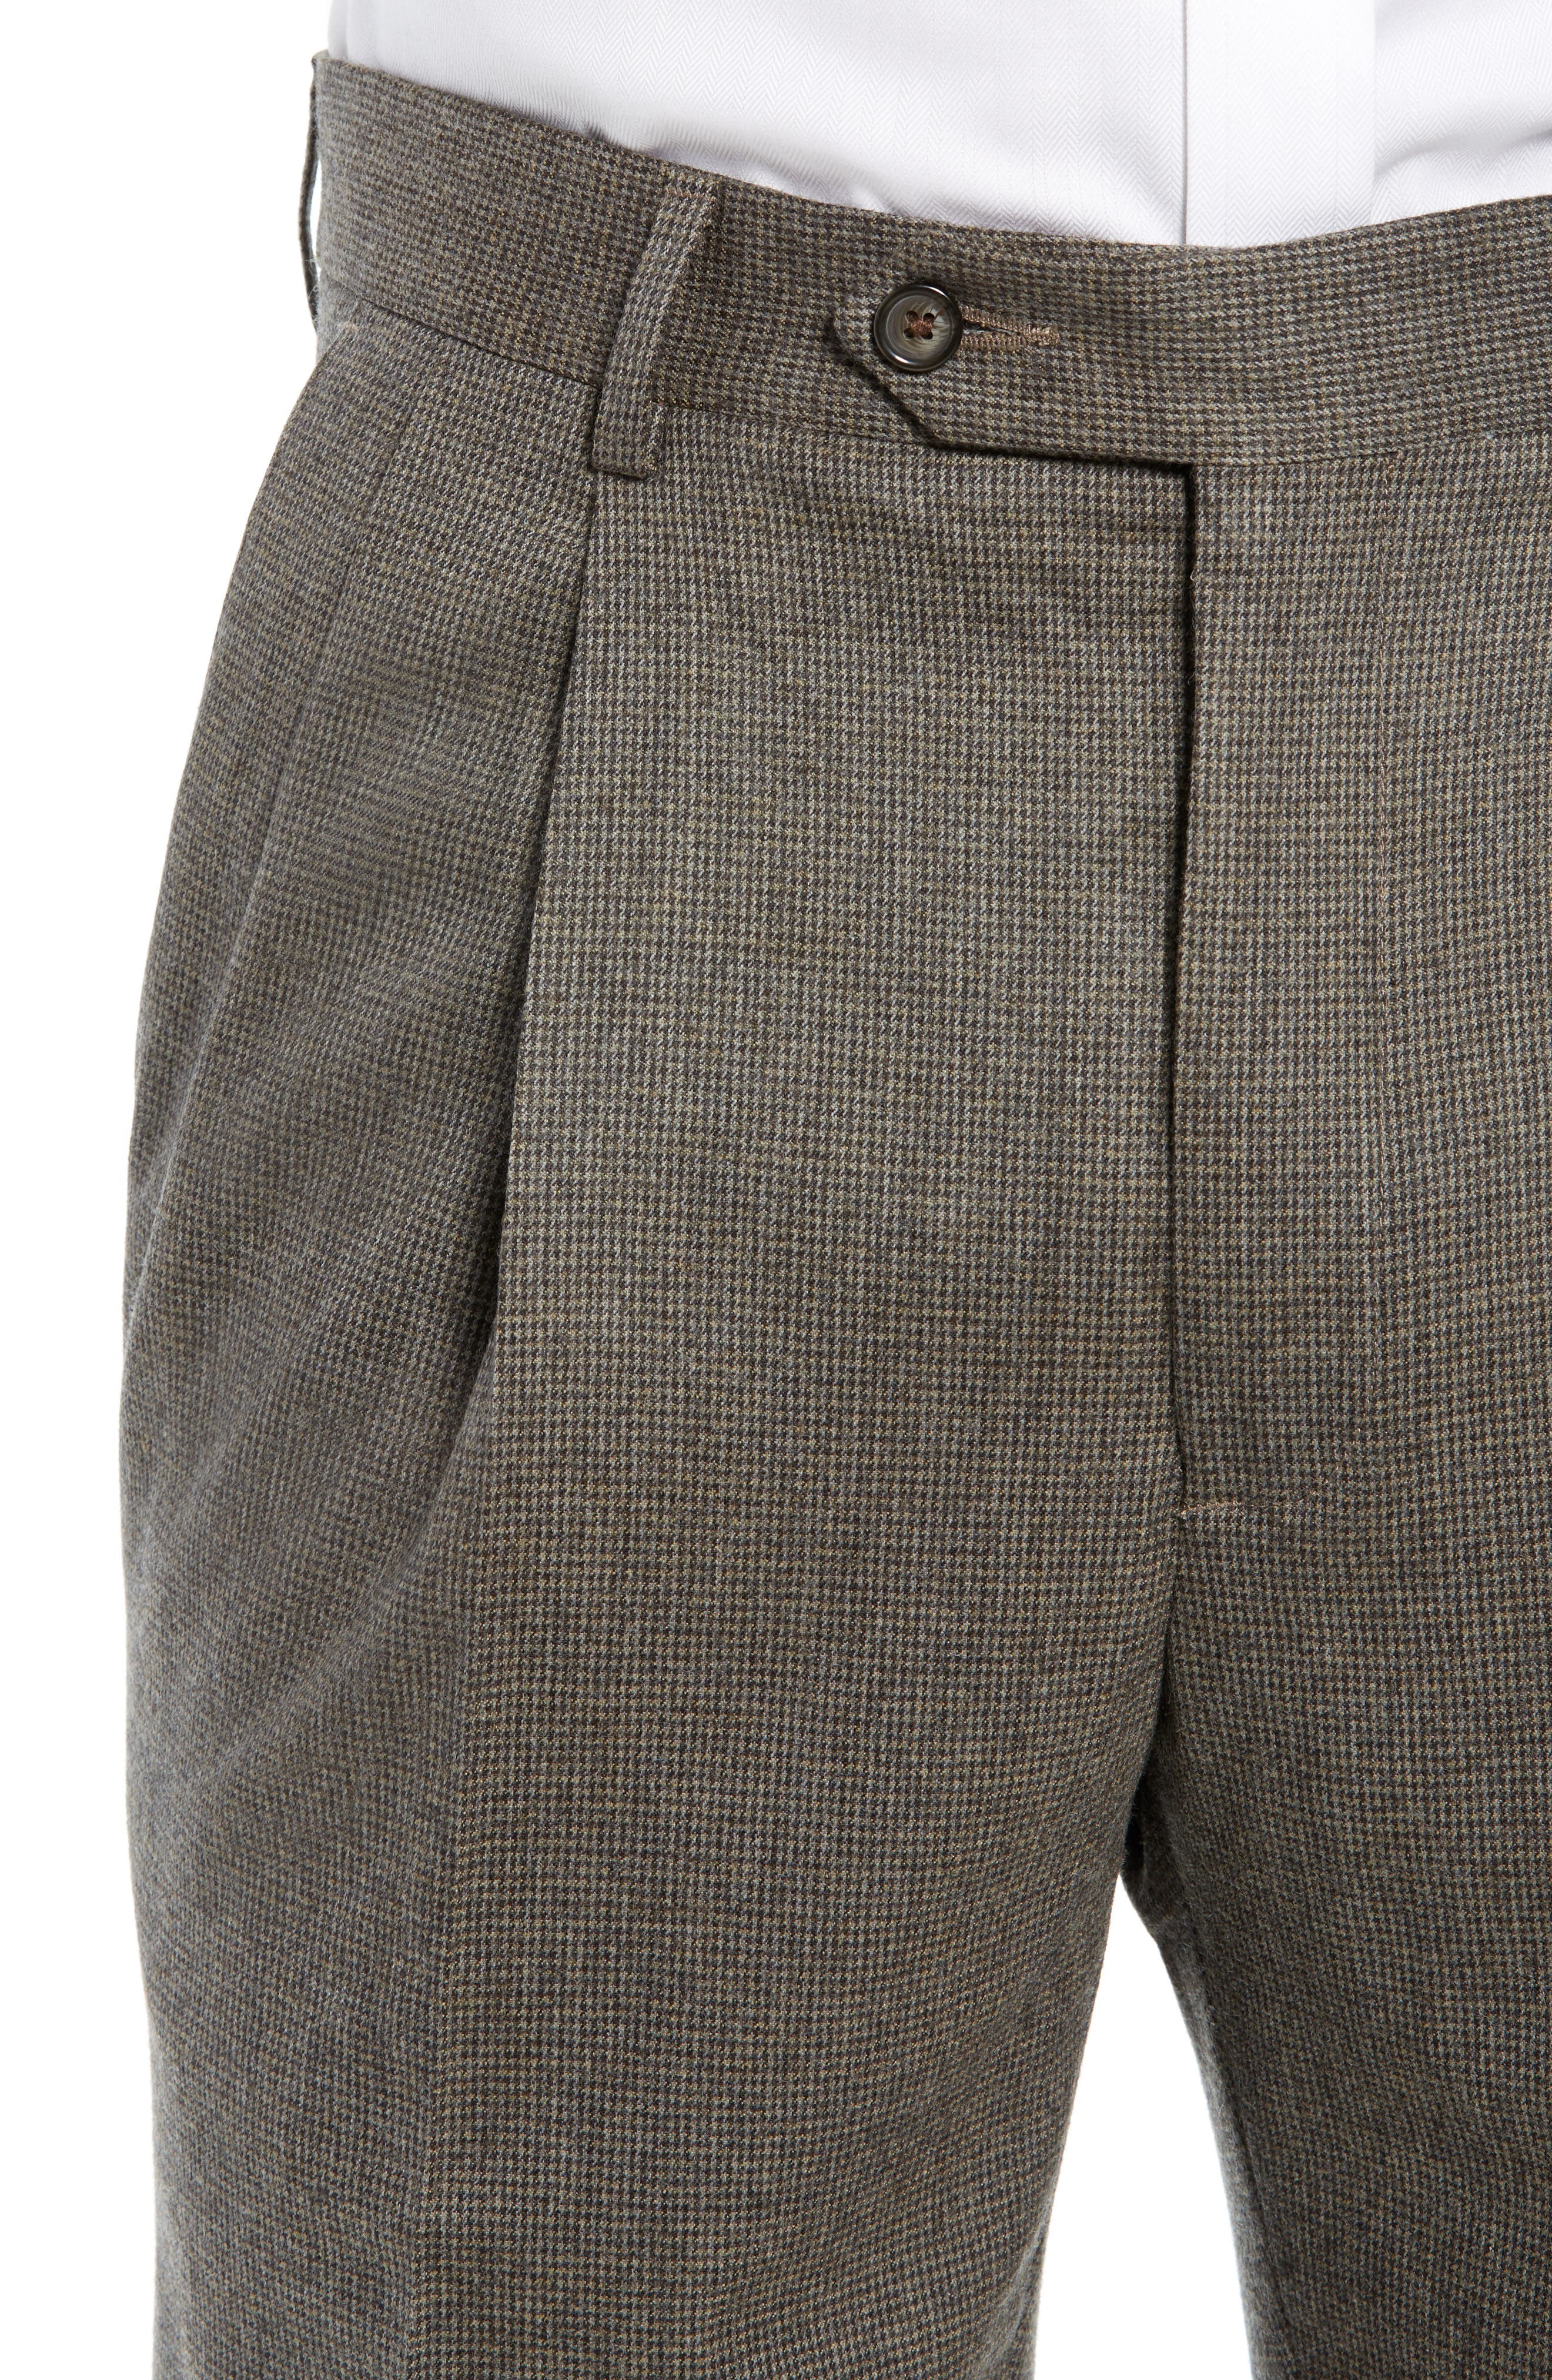 Pleated Stretch Houndstooth Wool Trousers,                             Alternate thumbnail 4, color,                             TAN